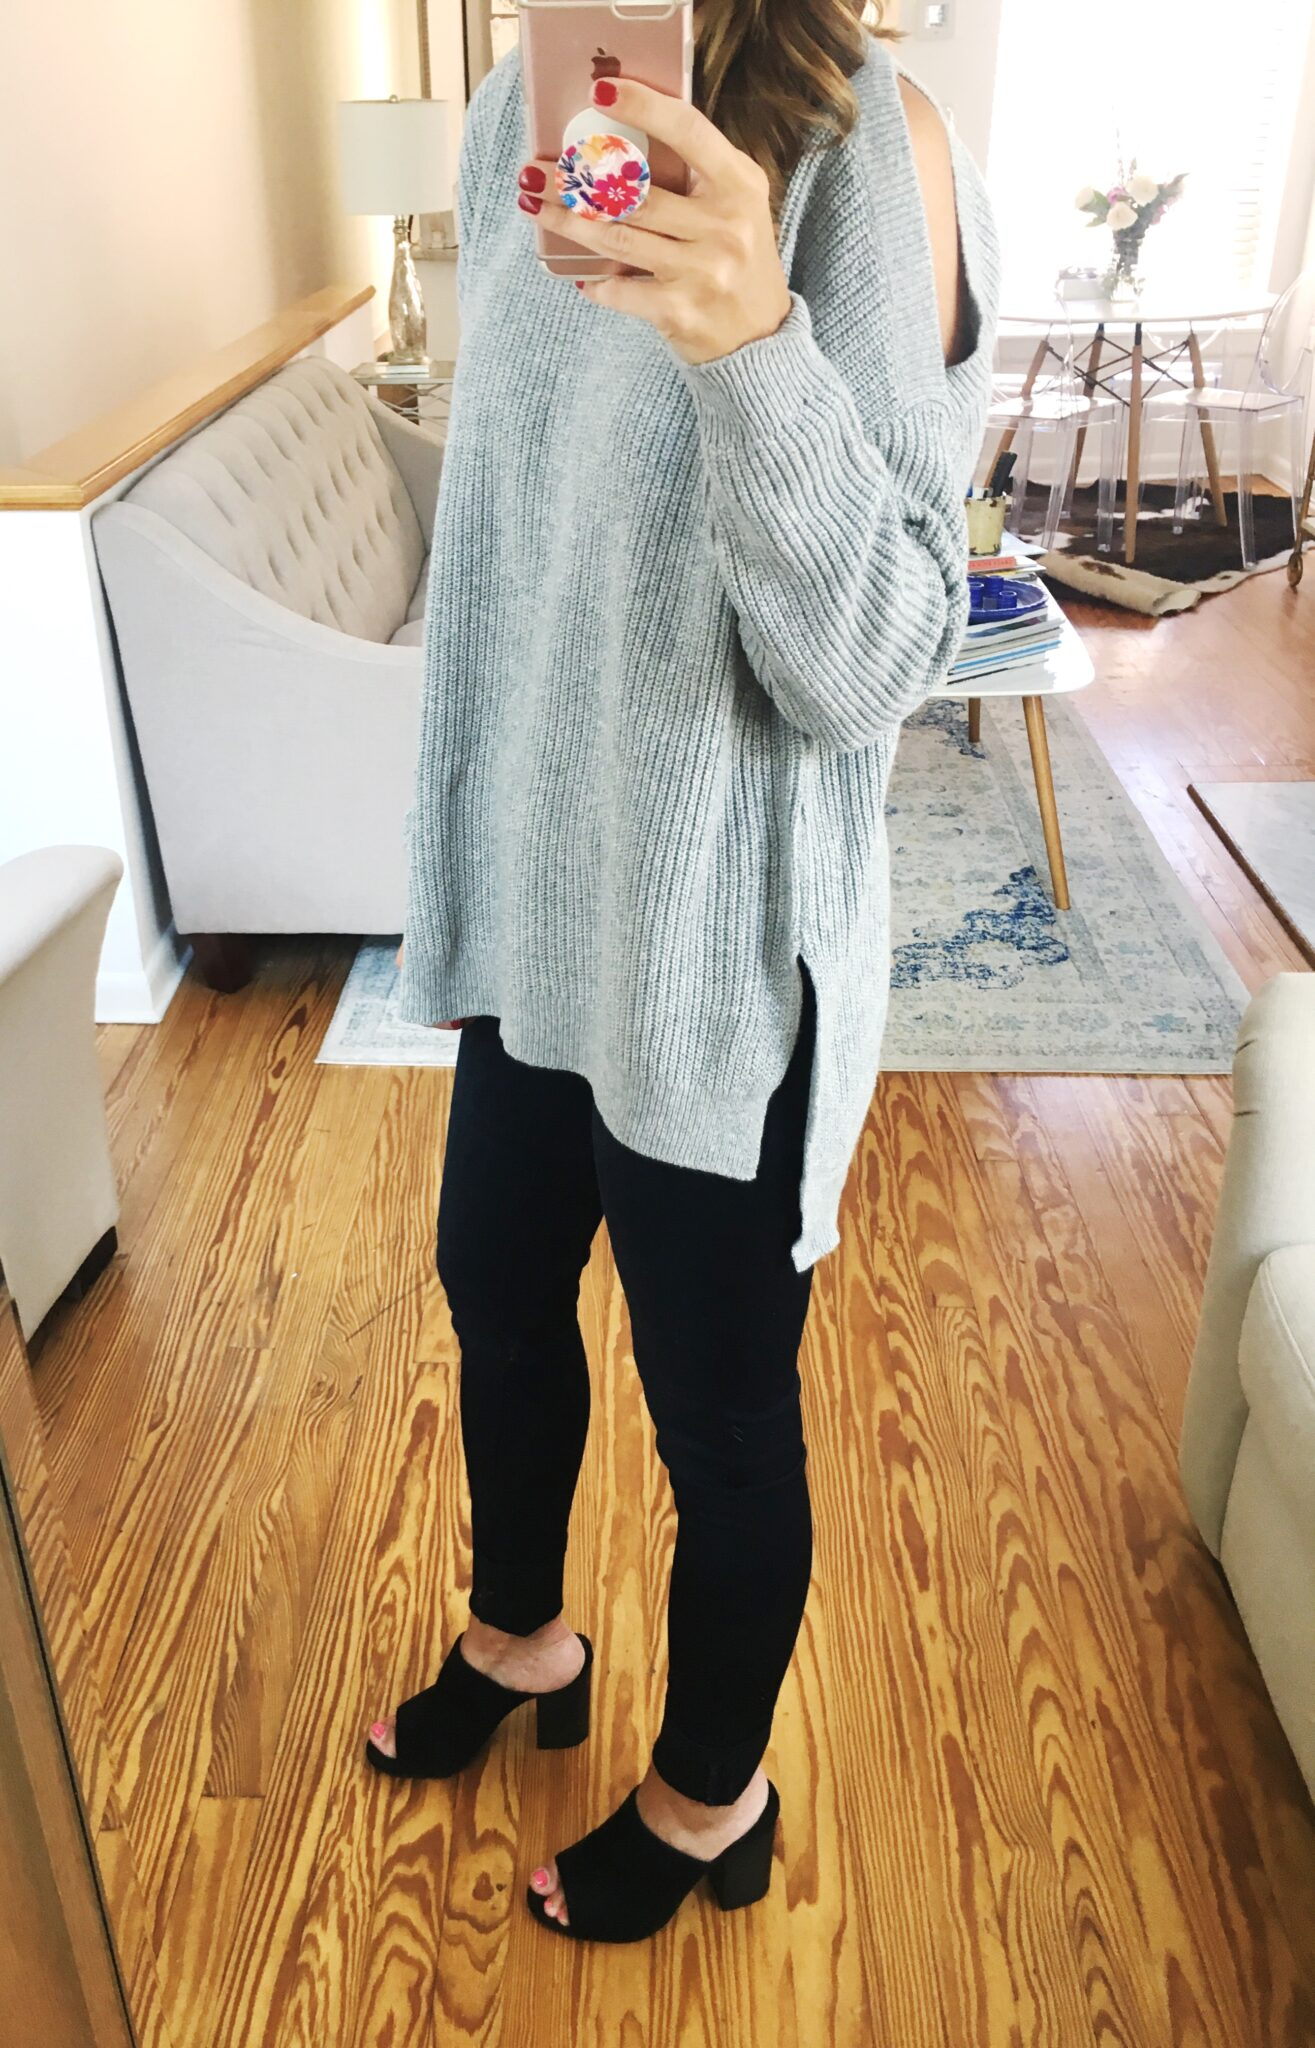 Grey Cold Shoulder Sweater - Nordstrom Anniversary Sale Try On Session by popular Washington DC style blogger Cobalt Chronicles